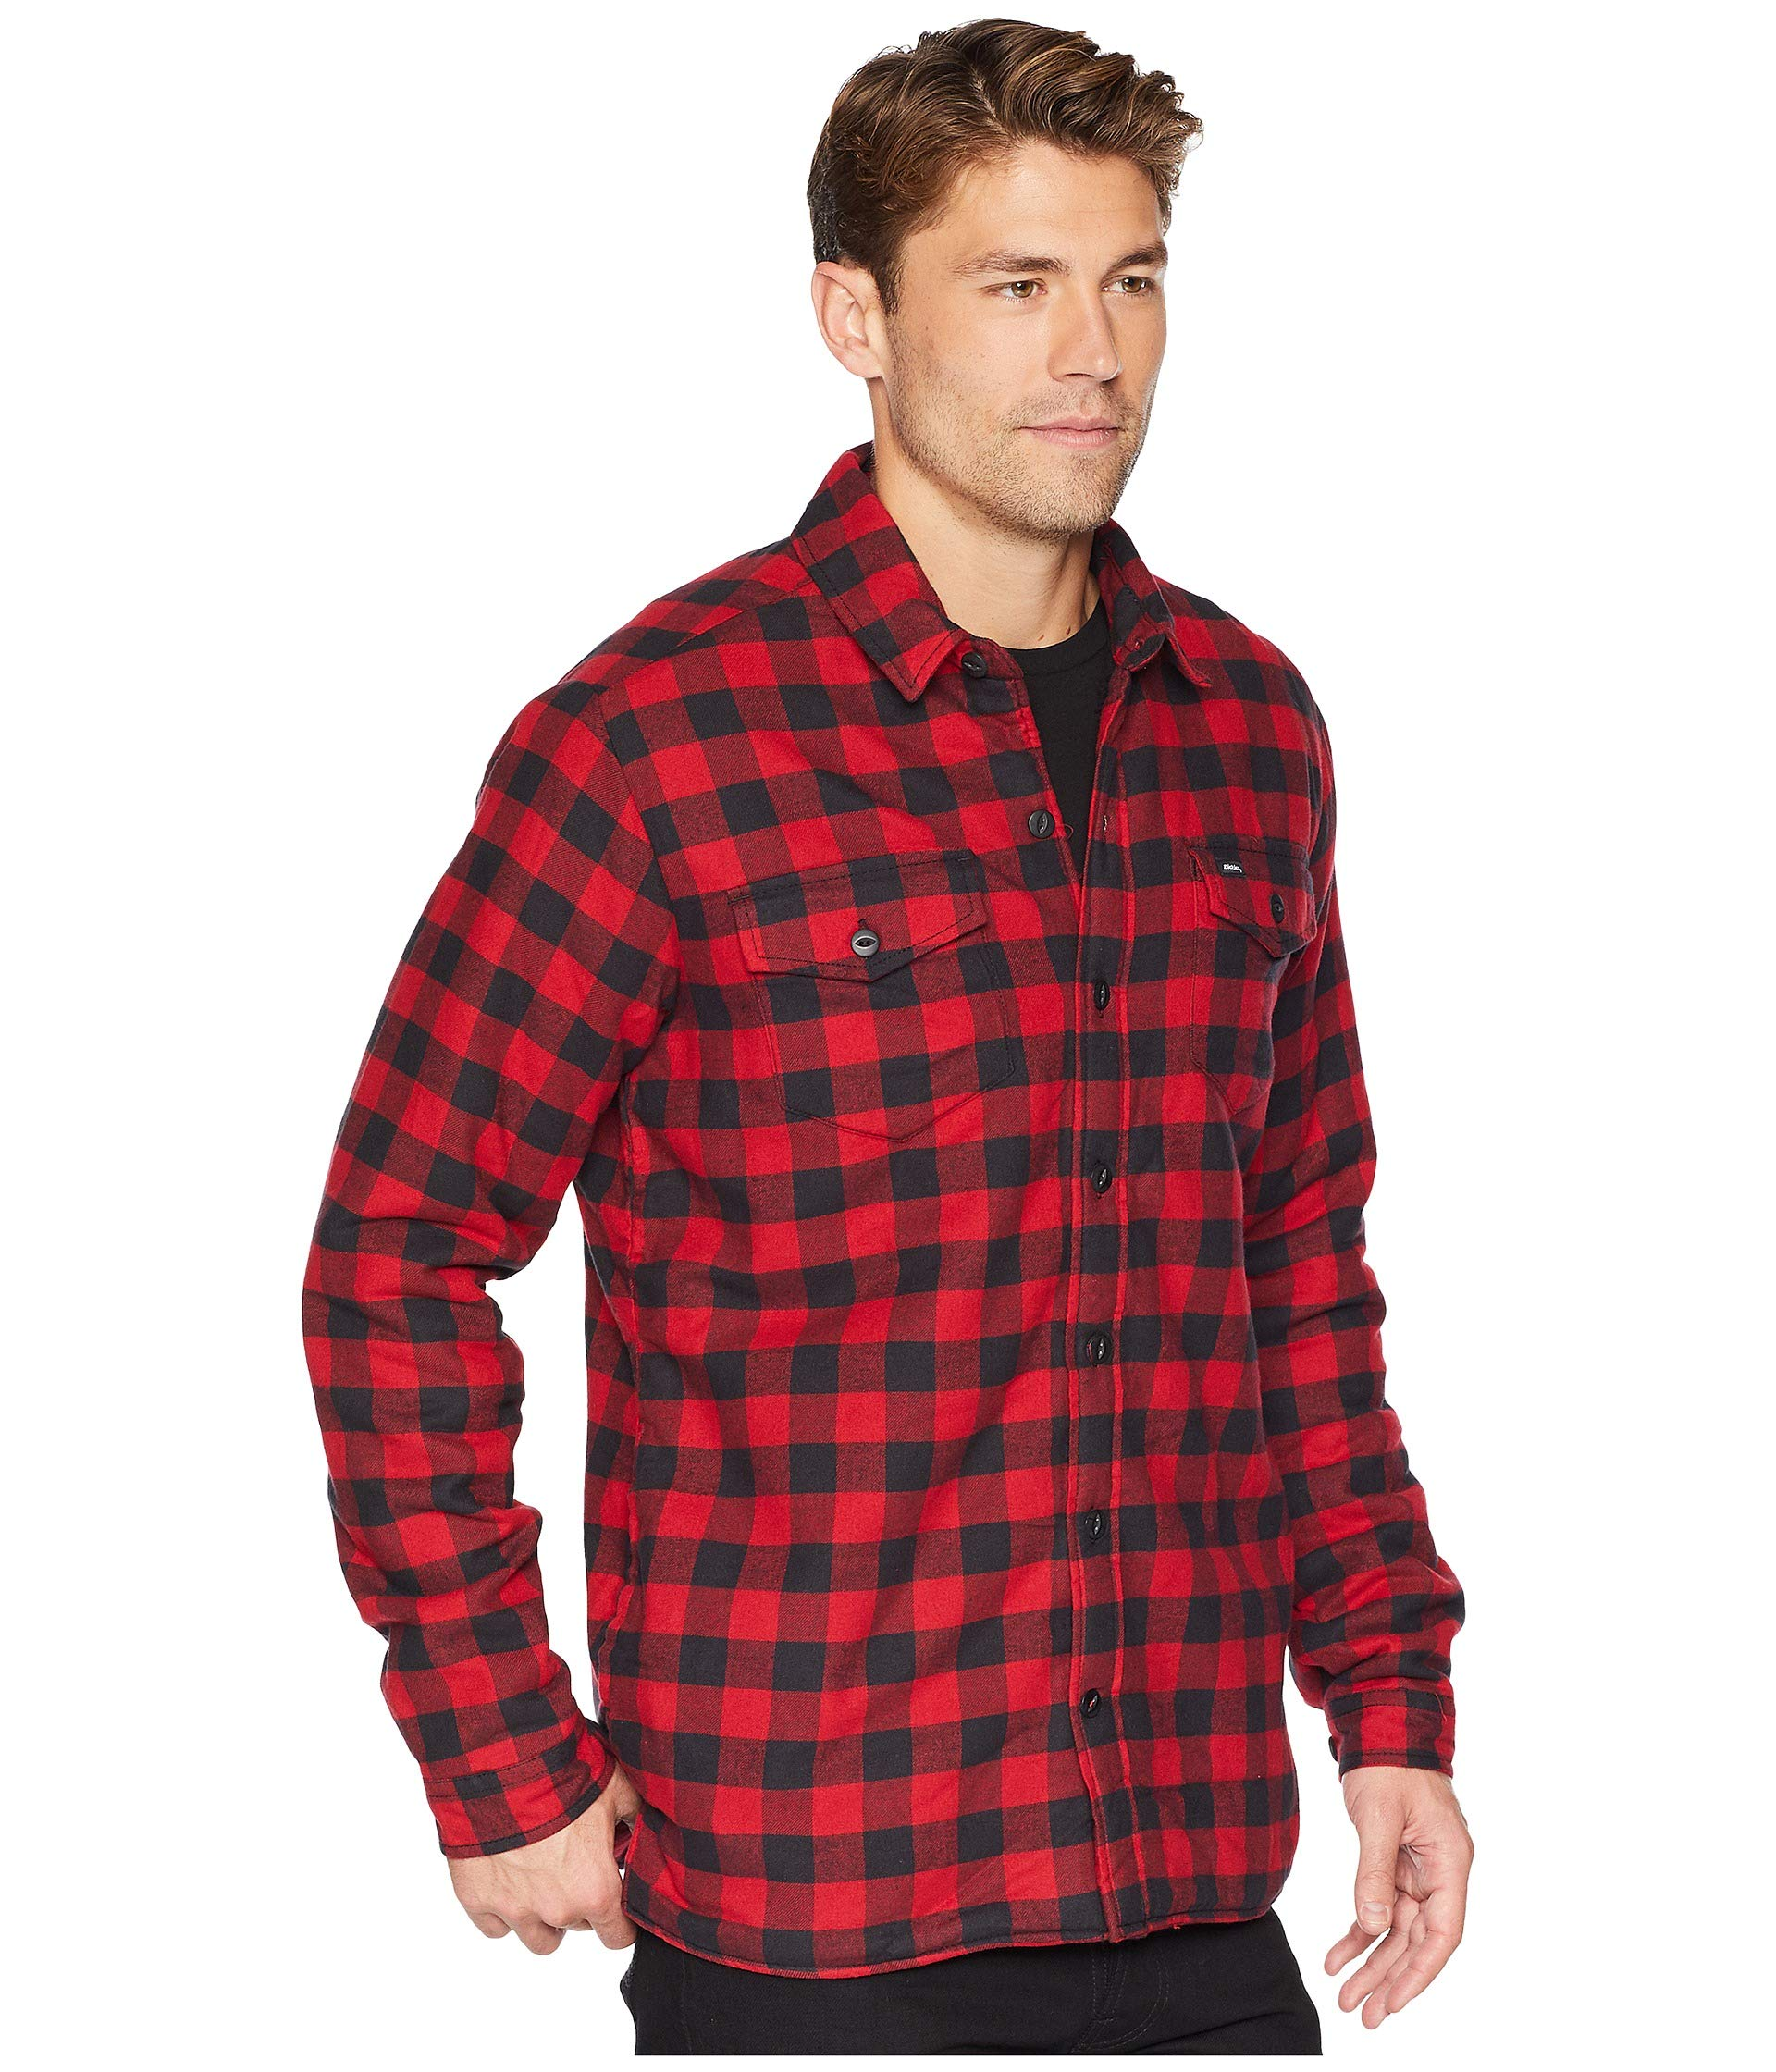 Buffalo black With Sherpa Plaid Jacket Rinsed Flannel Shirt 67 Lining Dickies White Collection Wqc6OpnS